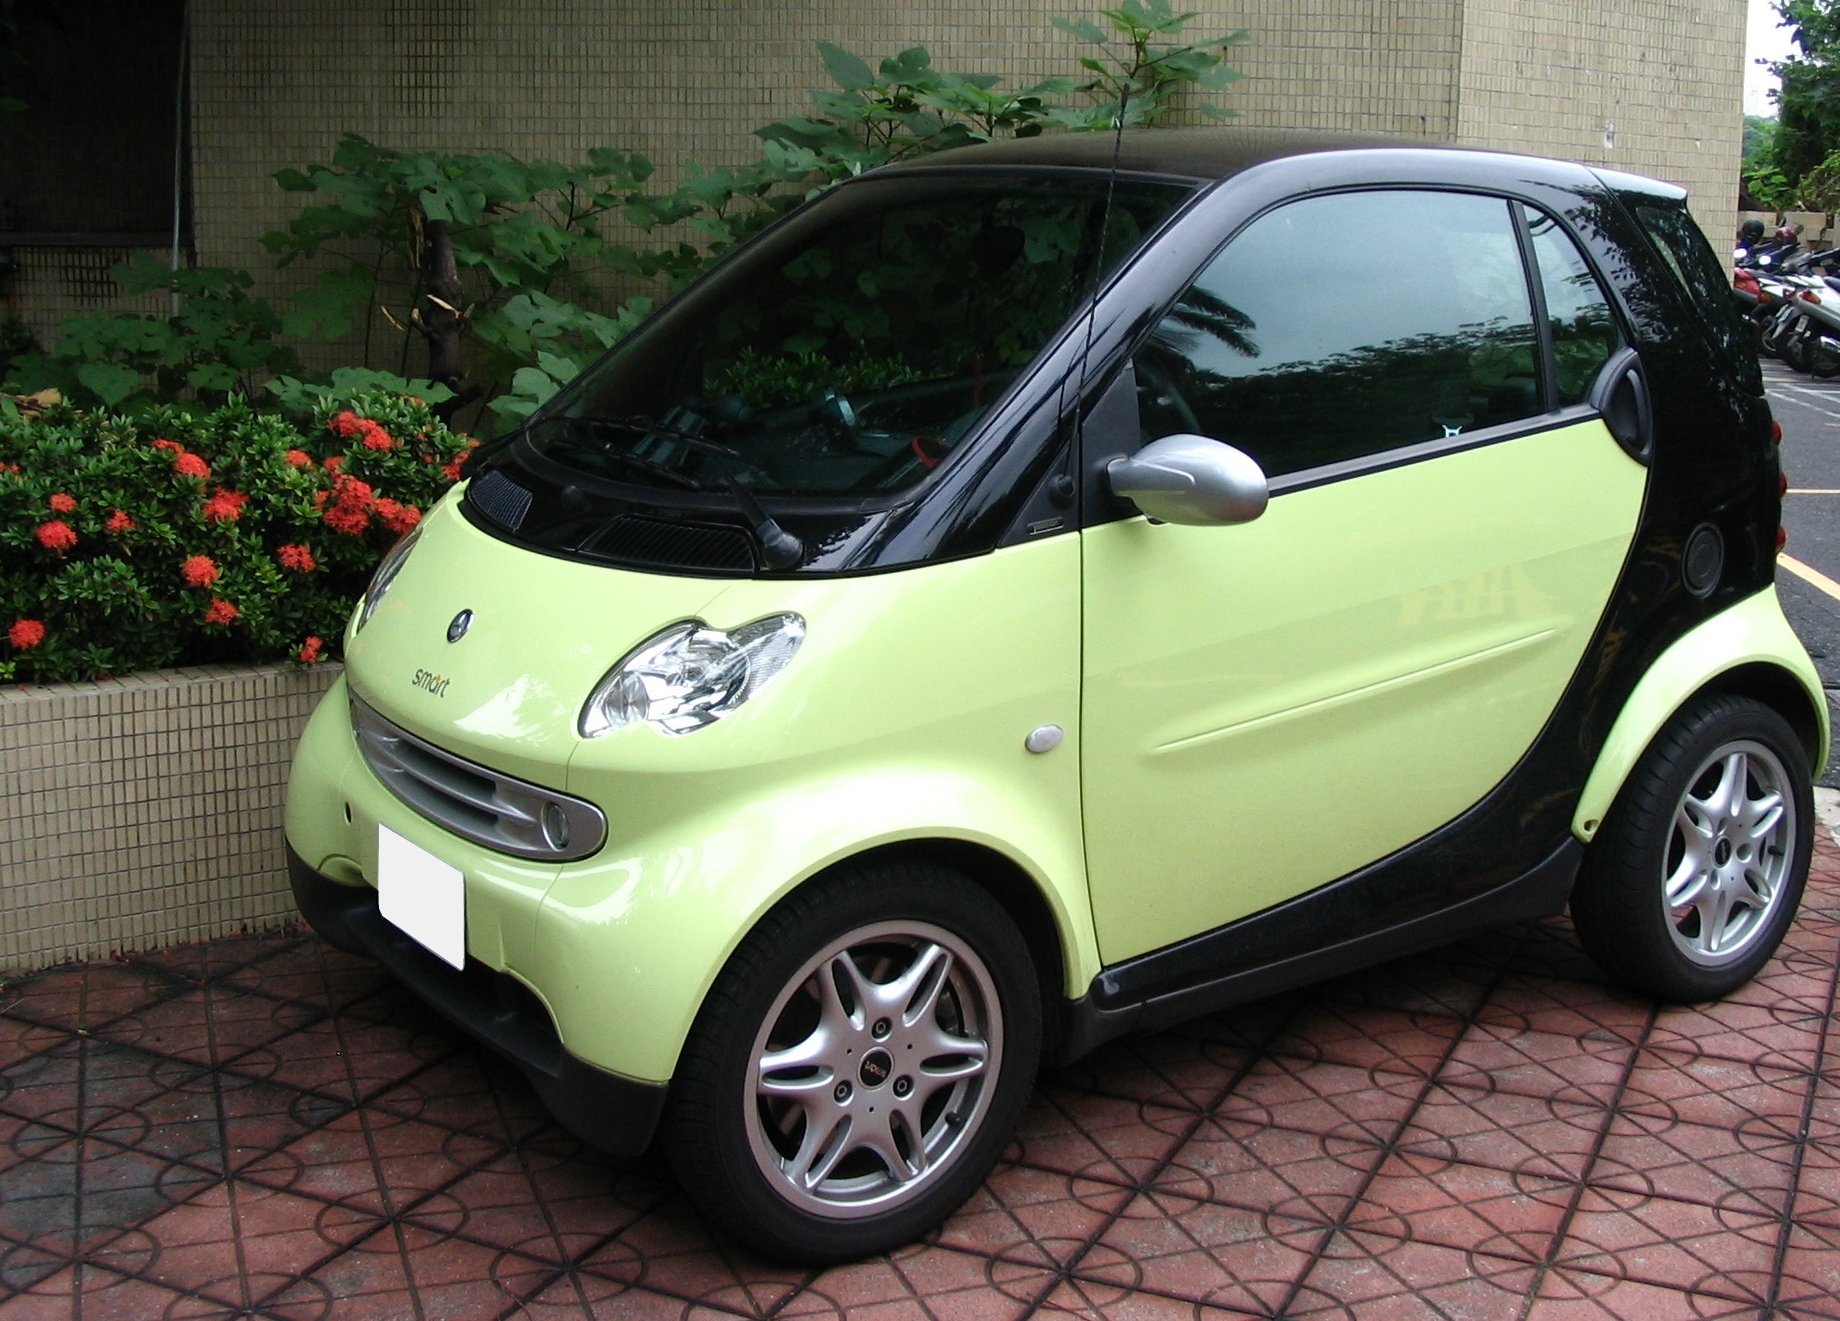 Smart Car Price Used New Image Tractor Construction Plant Wiki